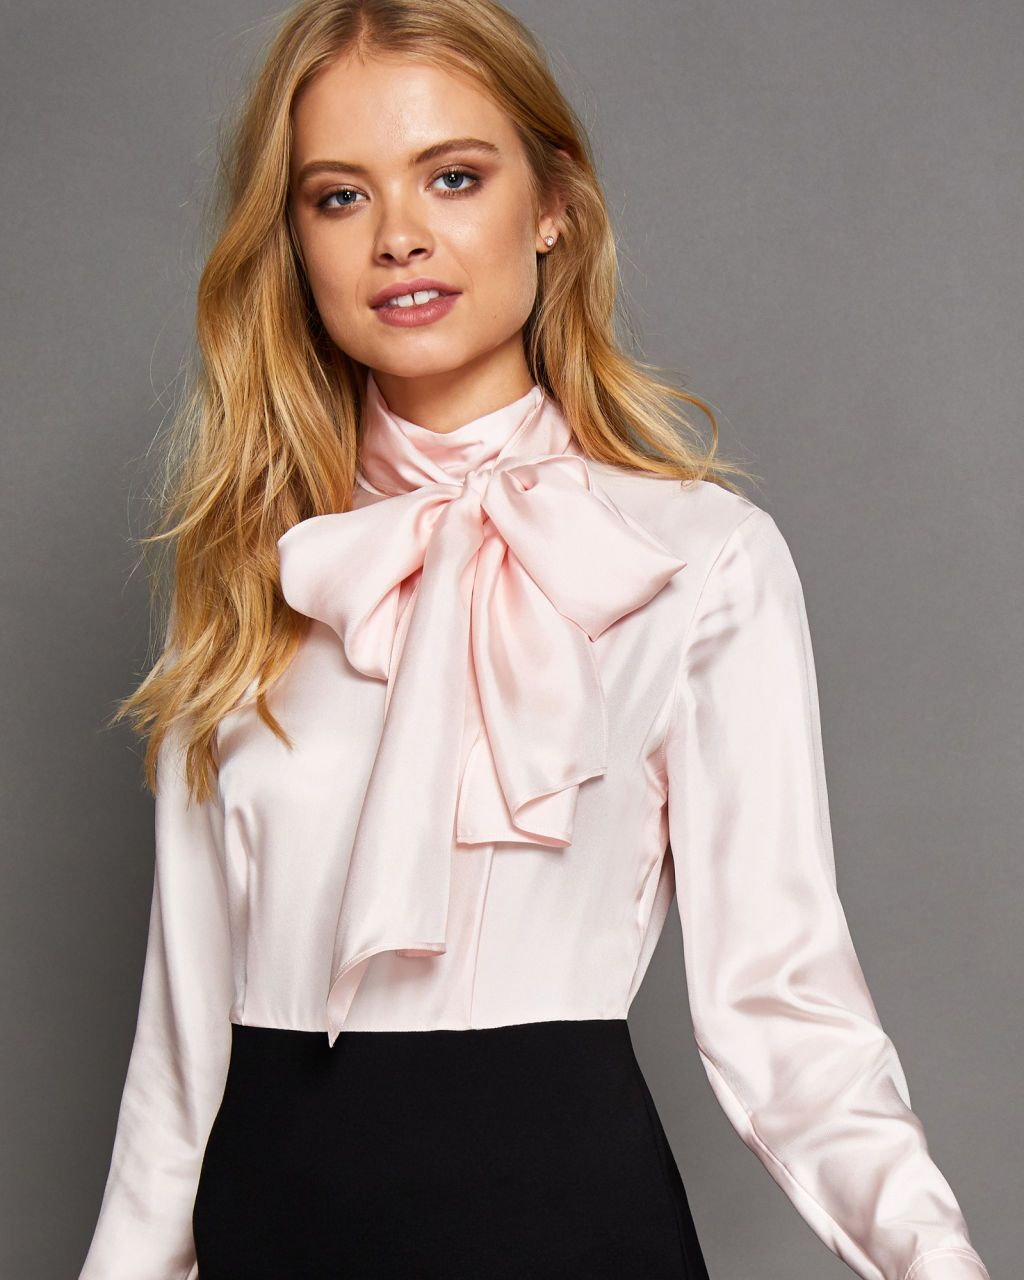 Ted baker bow neck bodycon dress ads